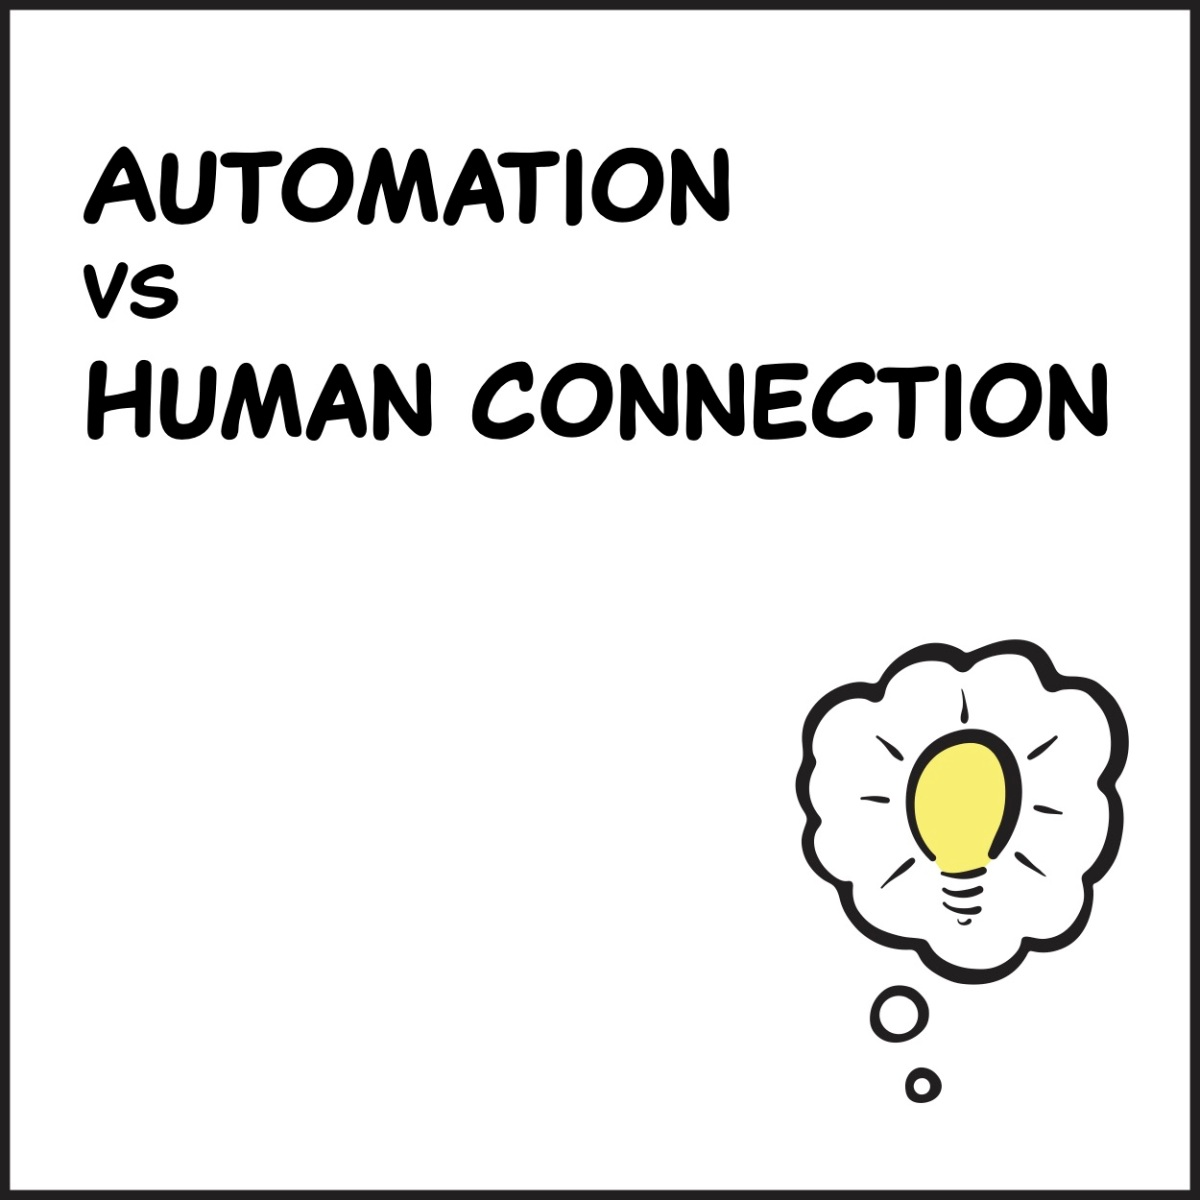 Automation vs Human Connection